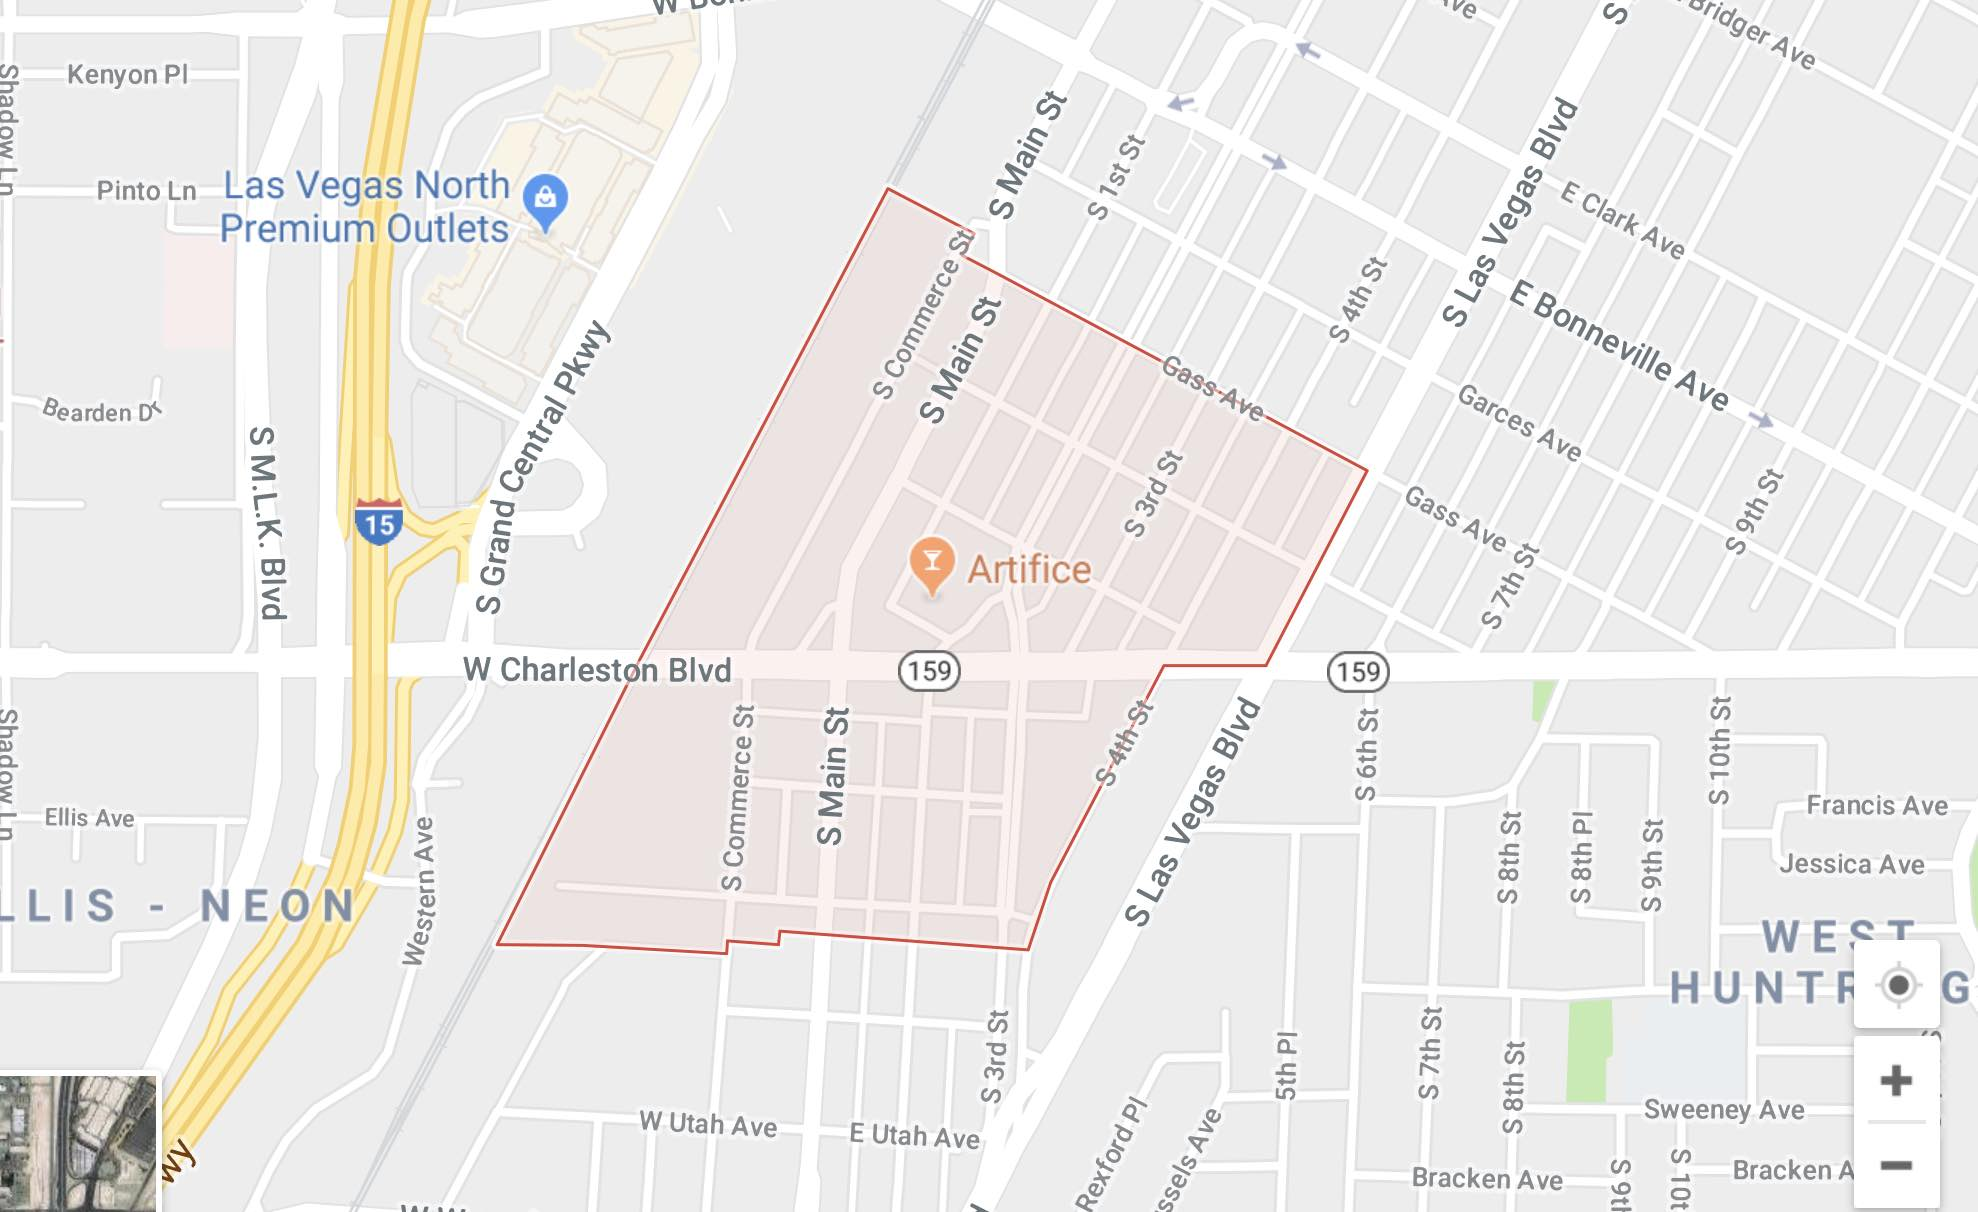 Map of the Las Vegas Arts District